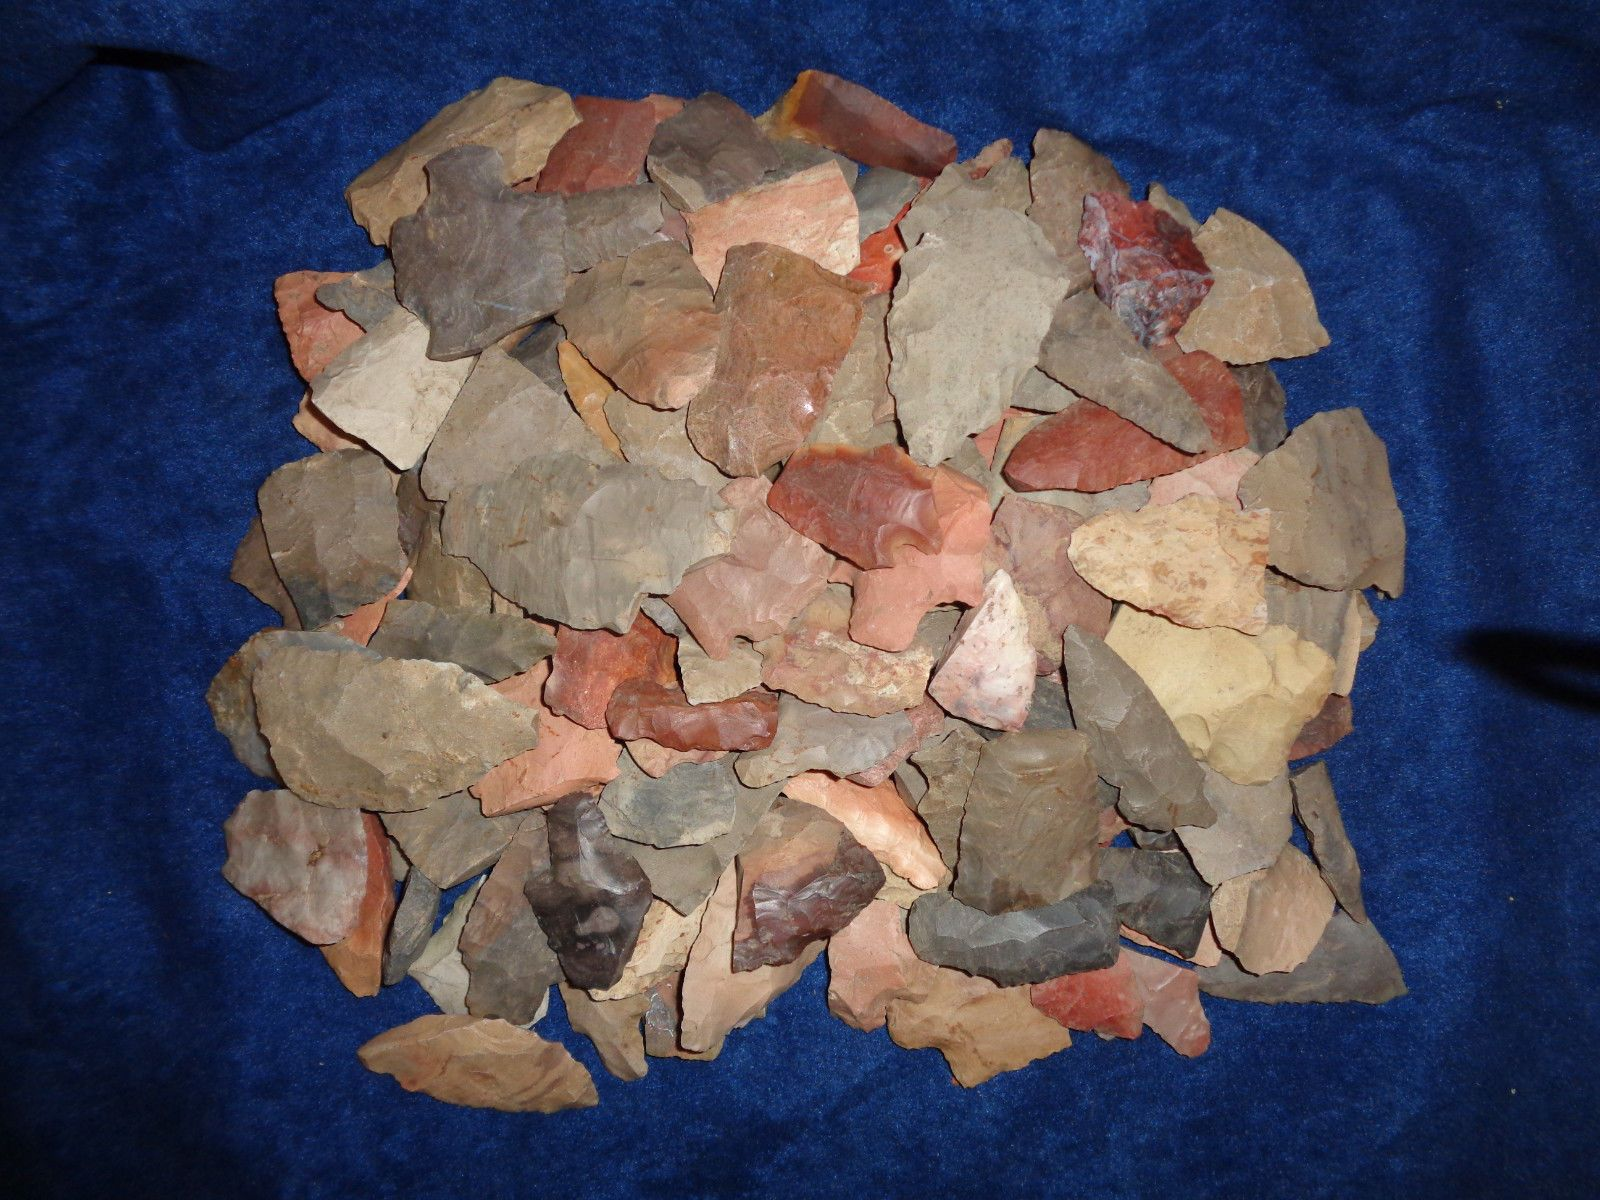 150 Points Spears and Knives Tenness Authentic Indian Arrowhead Artifact_ AWH https://t.co/HamwwZg1UX https://t.co/3om1LZiyCV